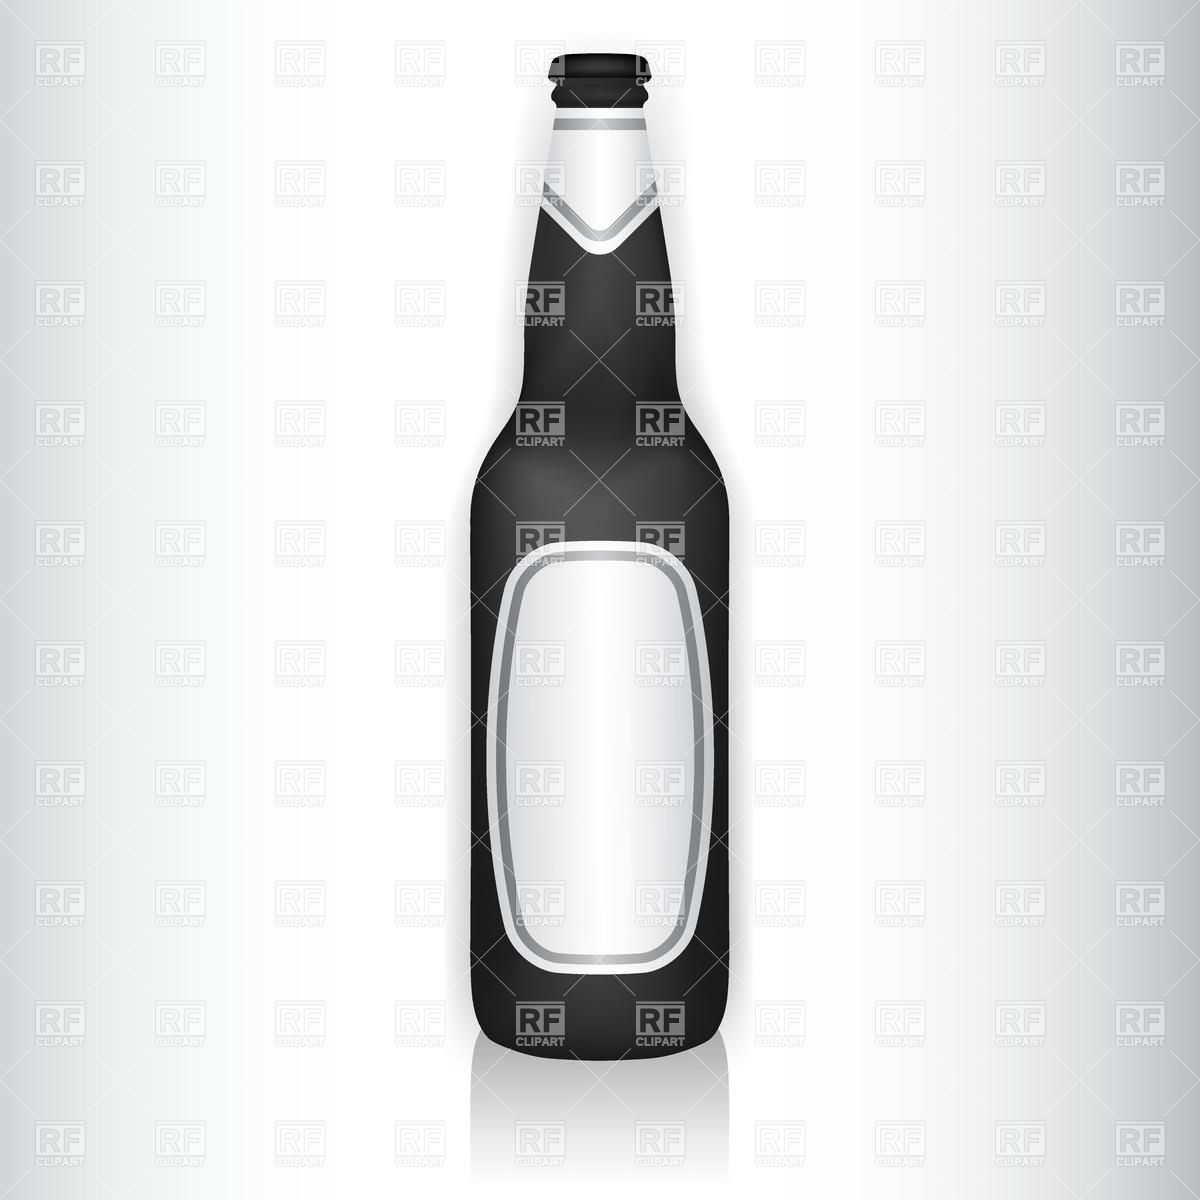 Black beer bottle with blank stickers Vector Image #16405.